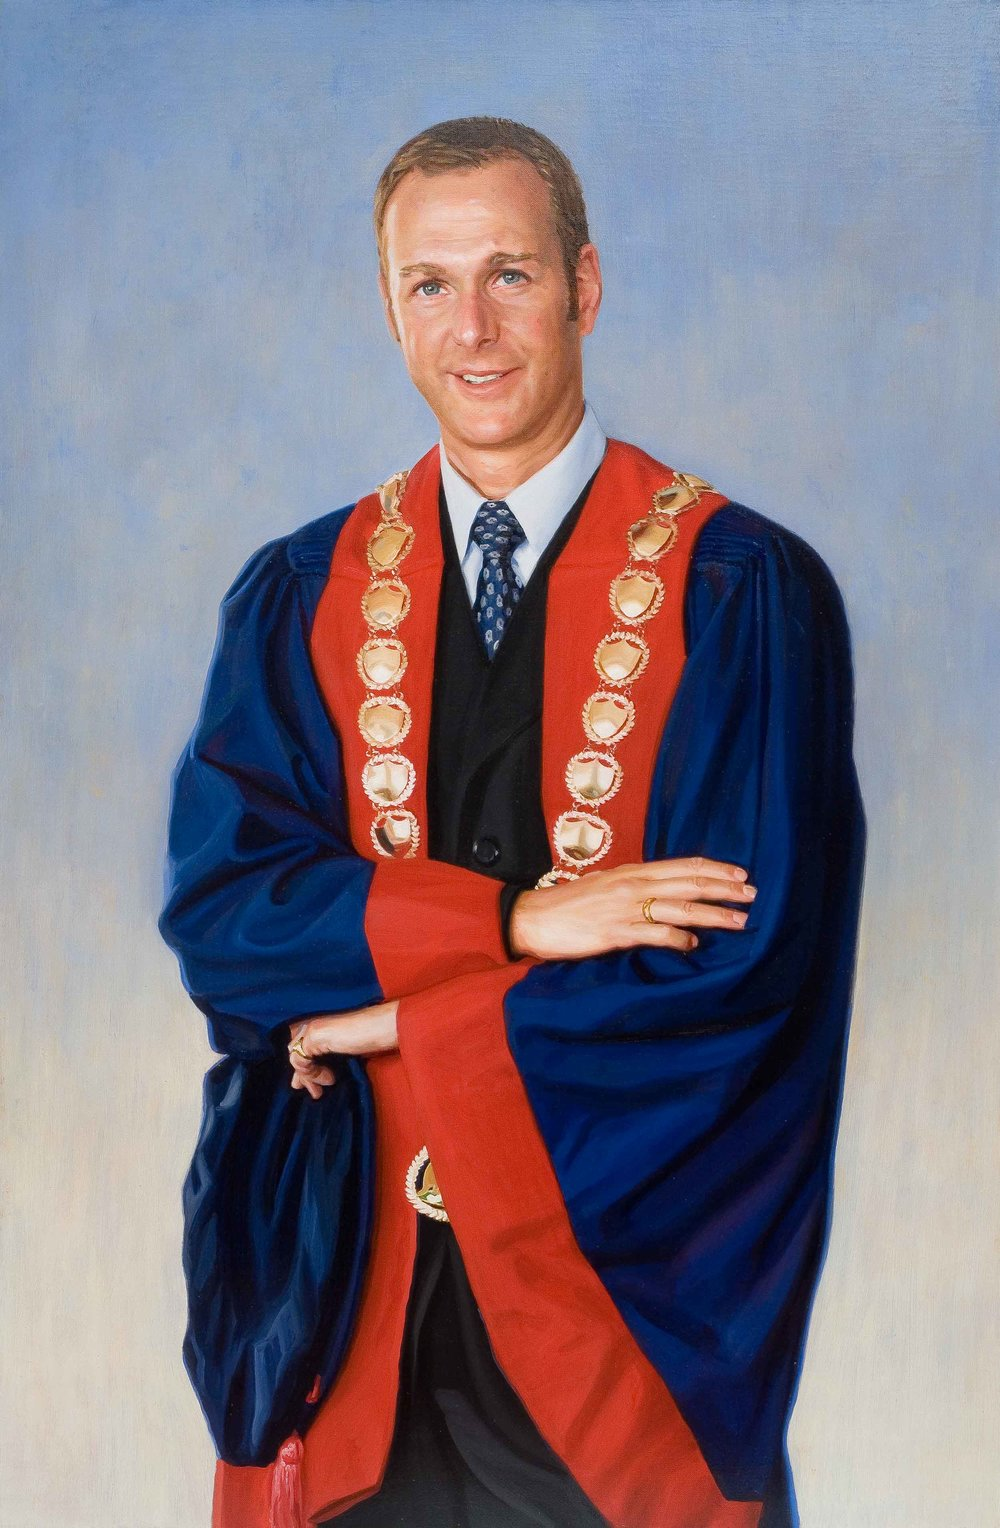 Professor Michael Kidd (2006)